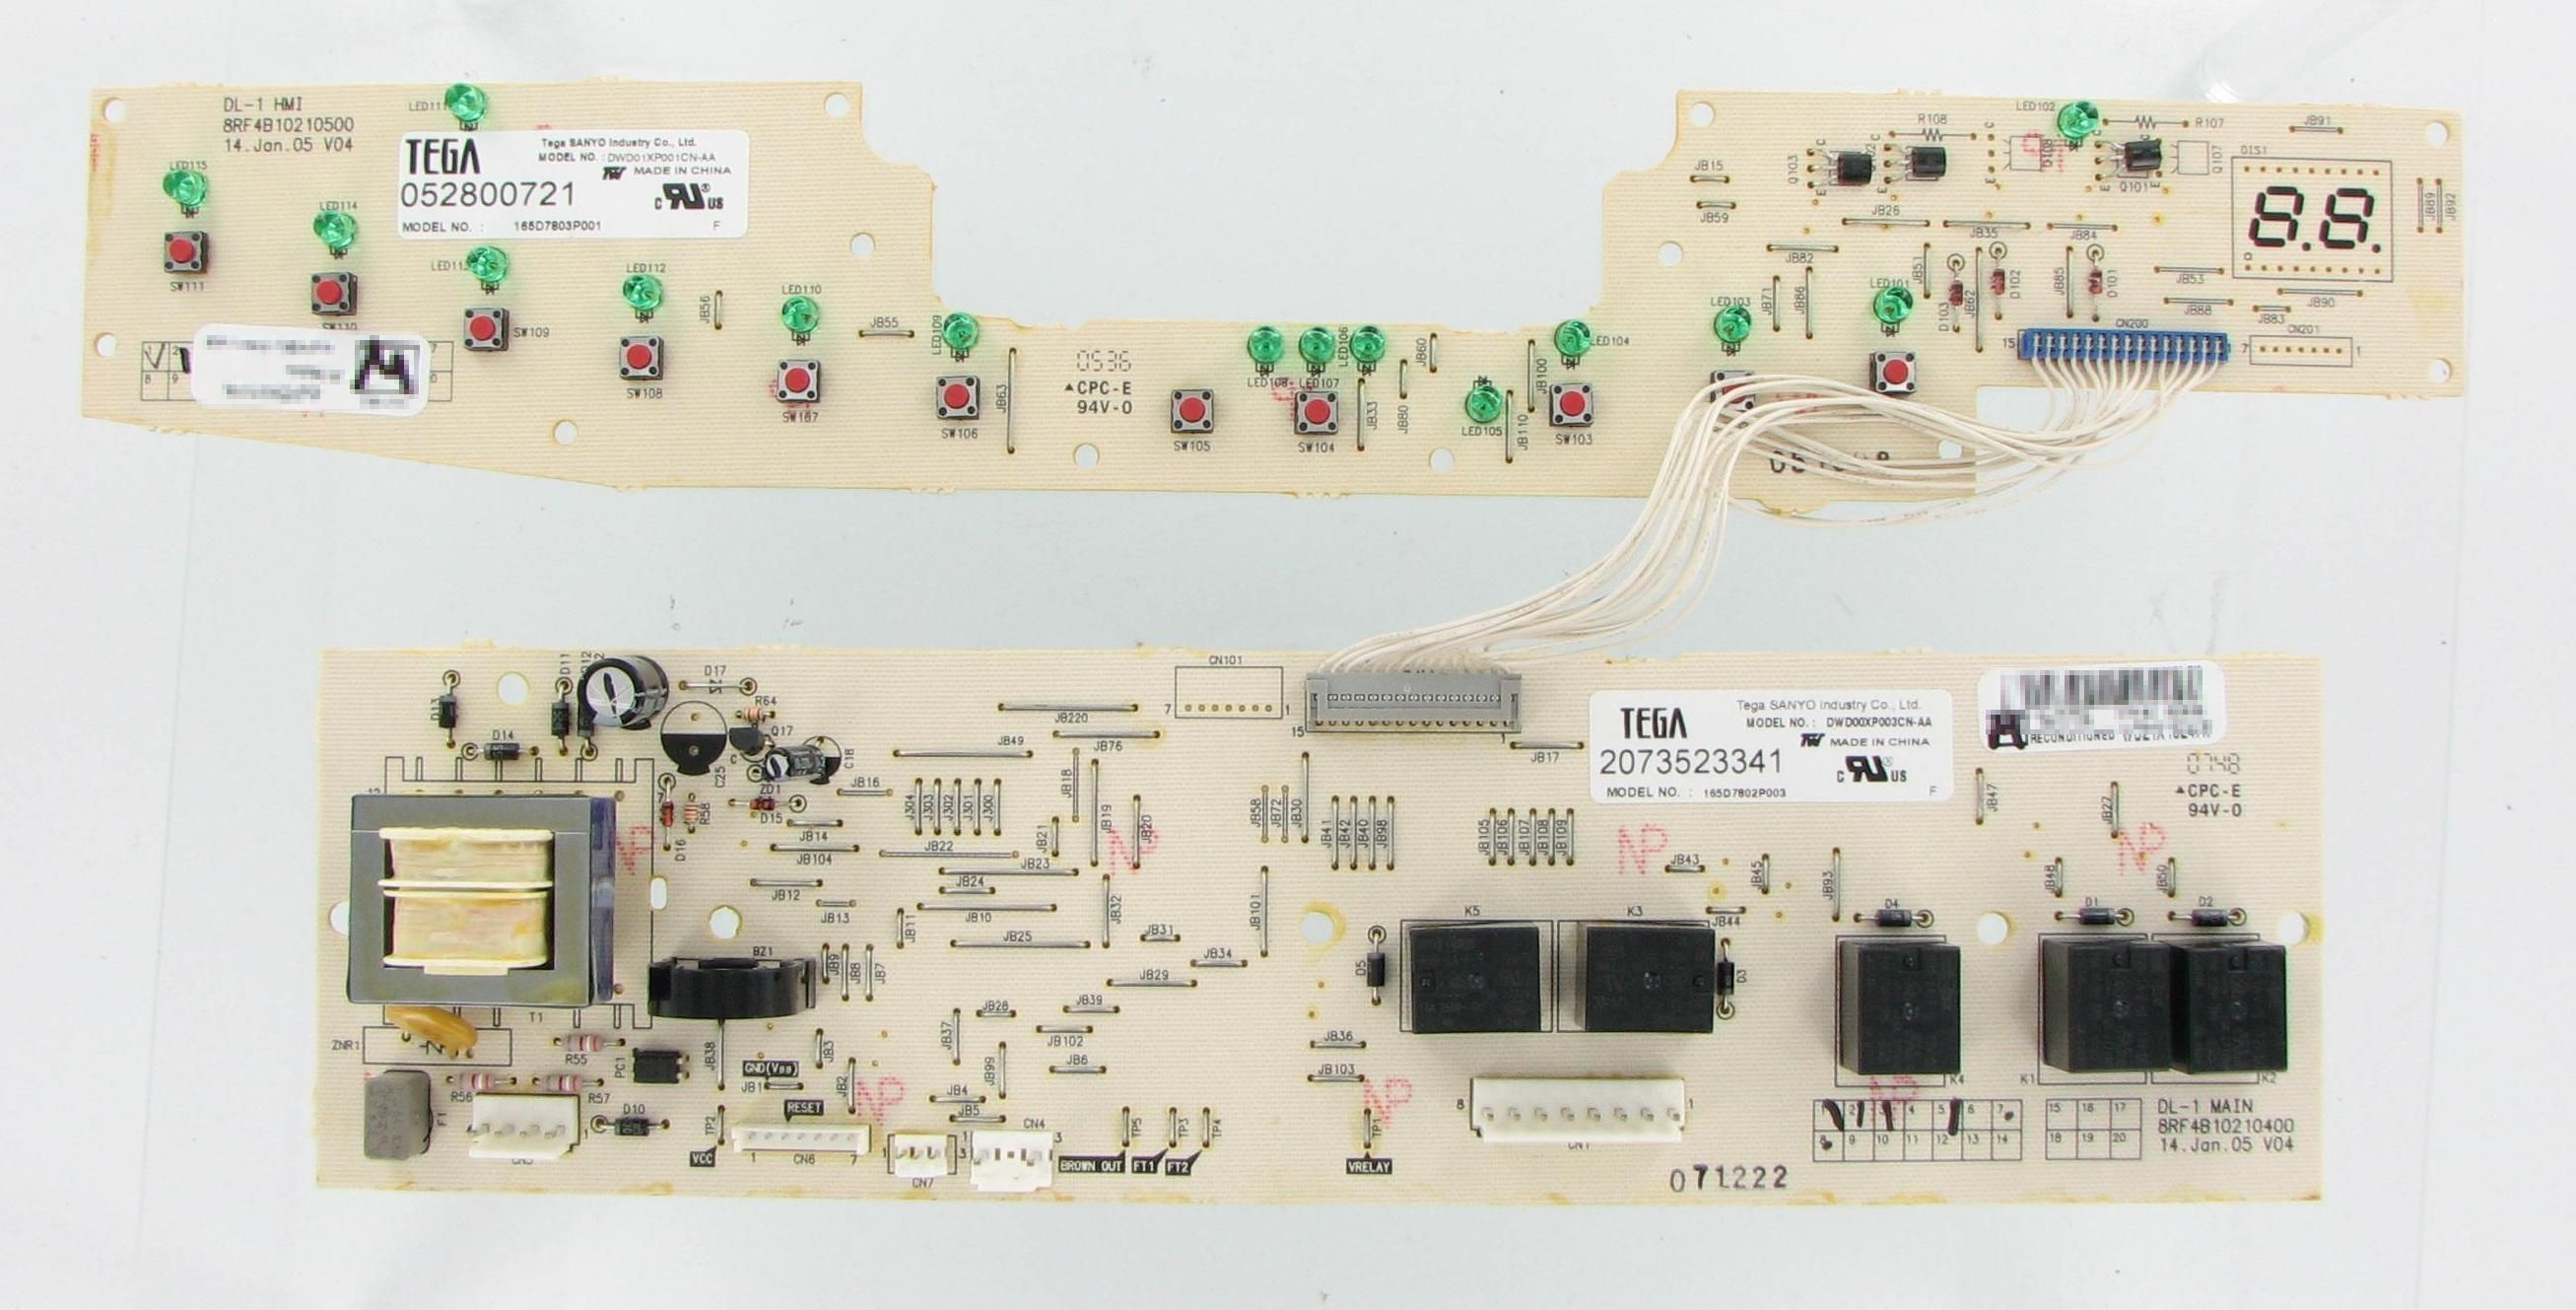 Ge Dishwasher Repair Service Ge Dishwasher Control Board Repair Service Wd21x10226